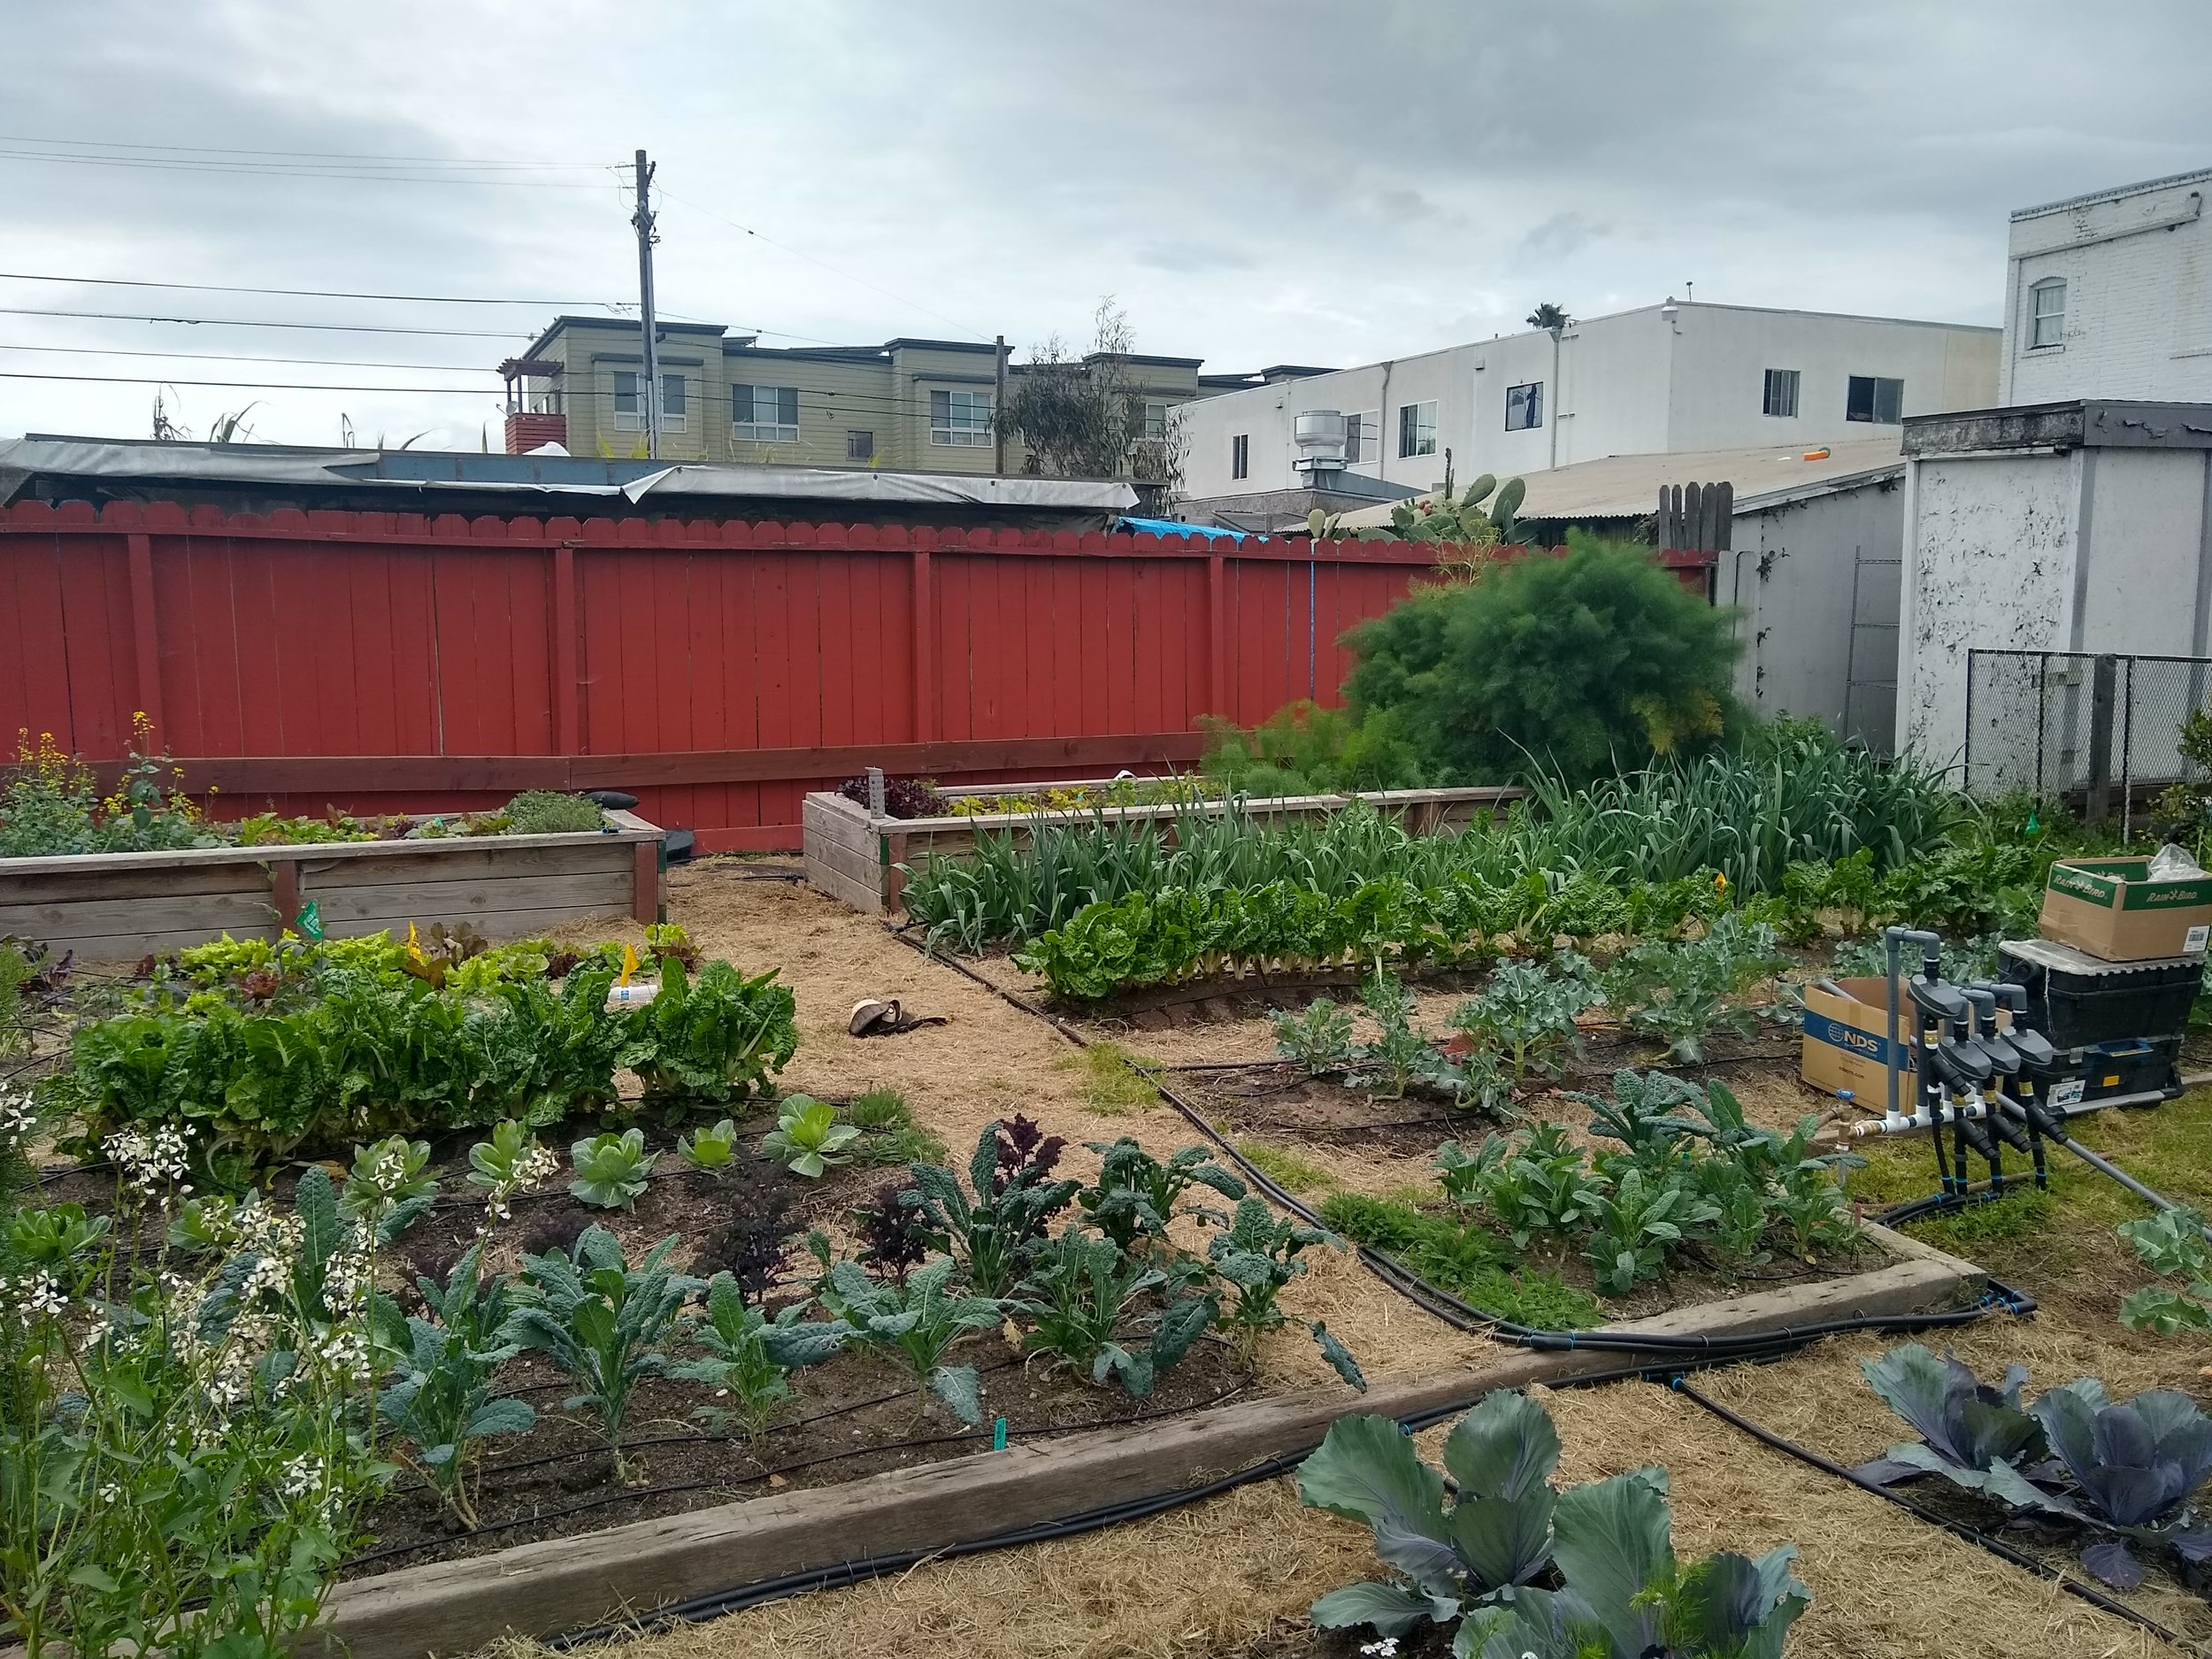 Community Justice Garden Build @ Bay Area Rescue Mission IMG 20190408 151657456 HDR